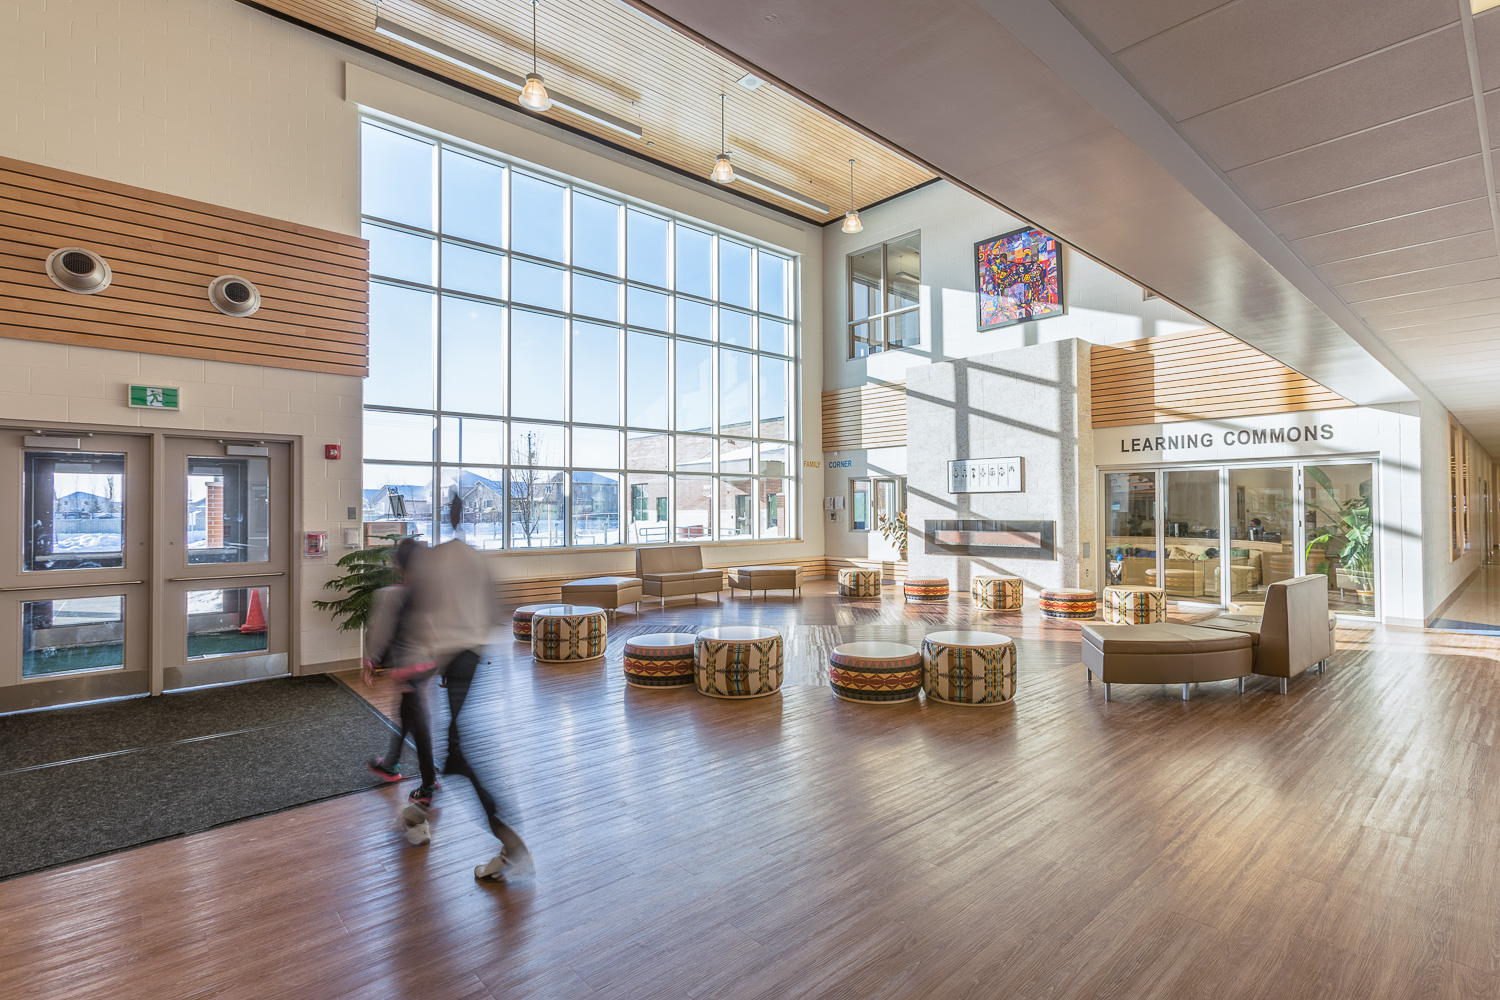 Amber Trails Community School, interior photo of main lobby with children walking / Photo:  Lindsay Reid